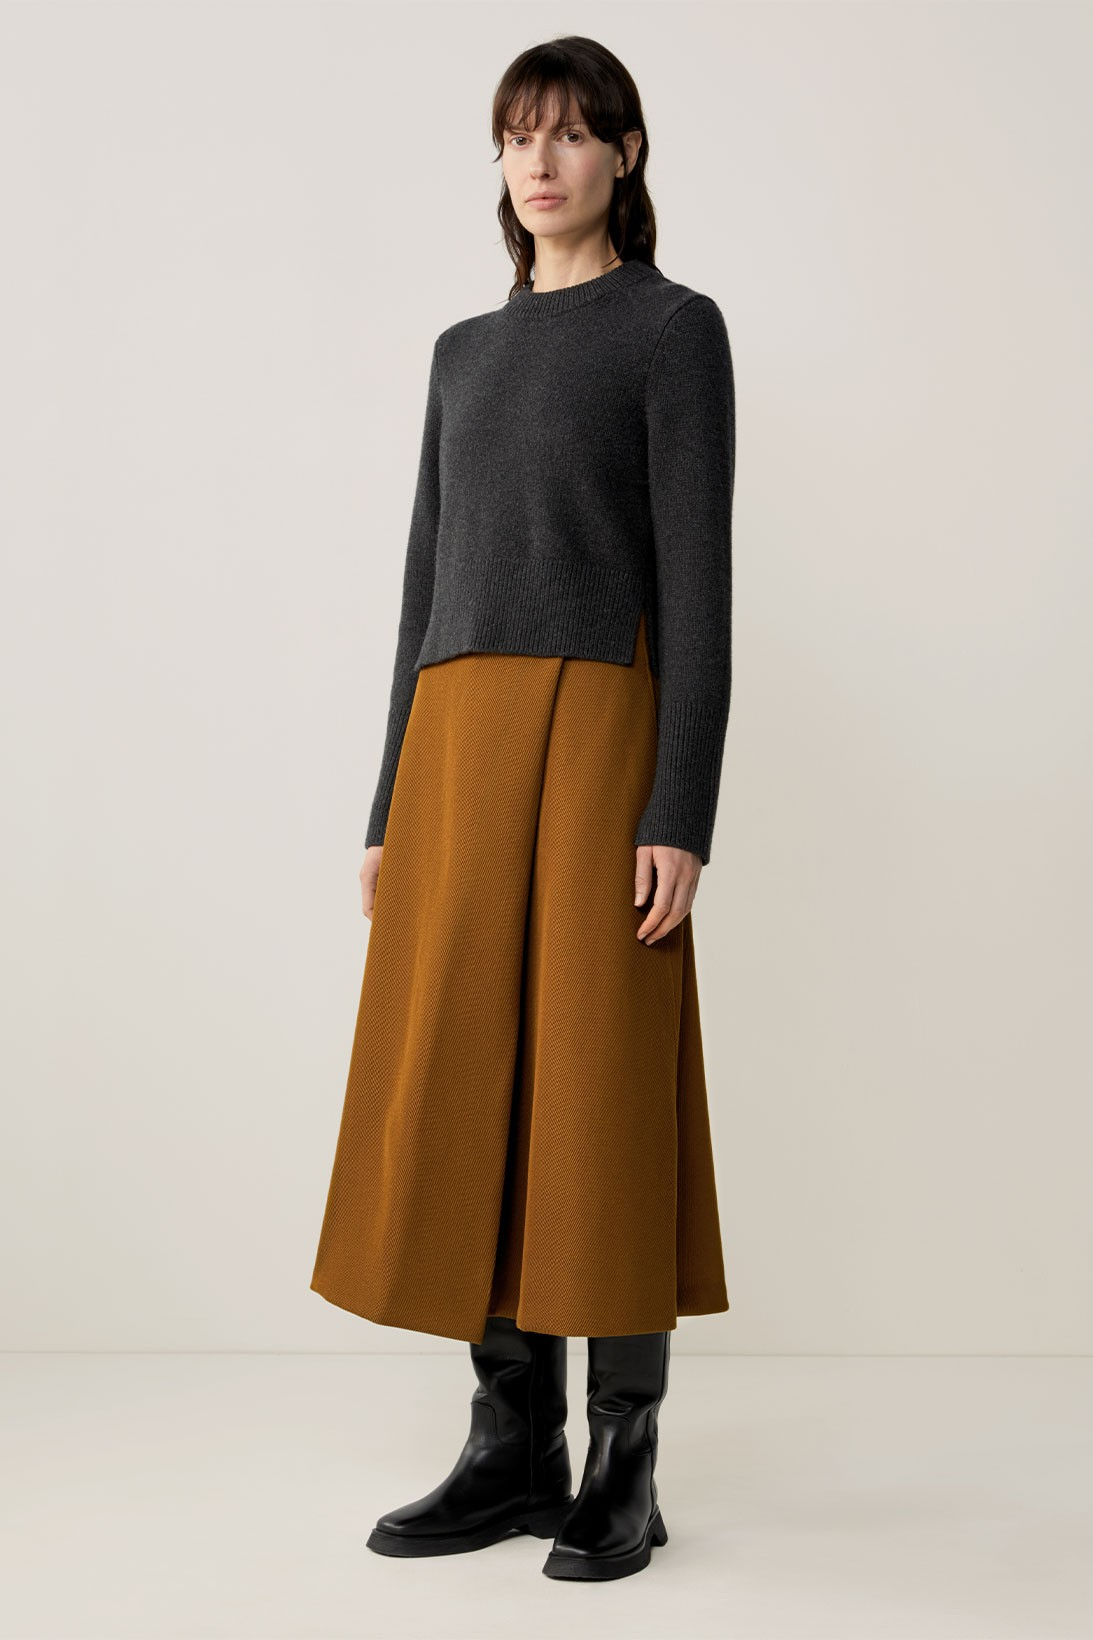 cos fall winter womenswear sustainability recycled fabric minimalist lookbook